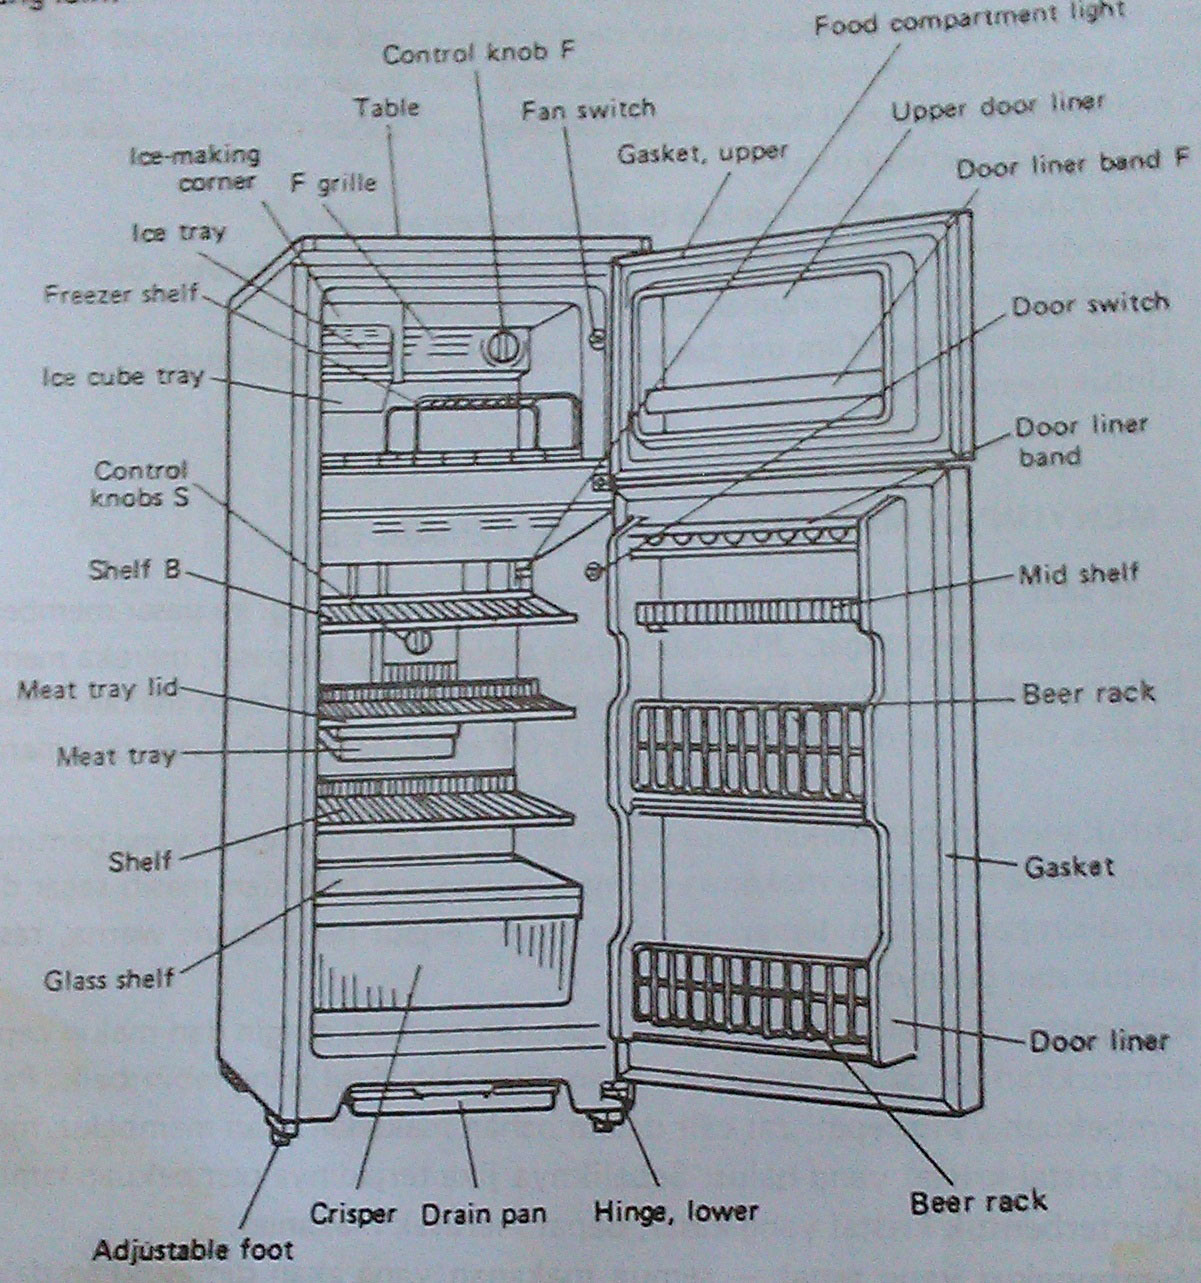 Wiring Diagram For Mitsubishi Mini Split 2008 Endeavor Fuse Kulkas 2 Pintu 2004 Box